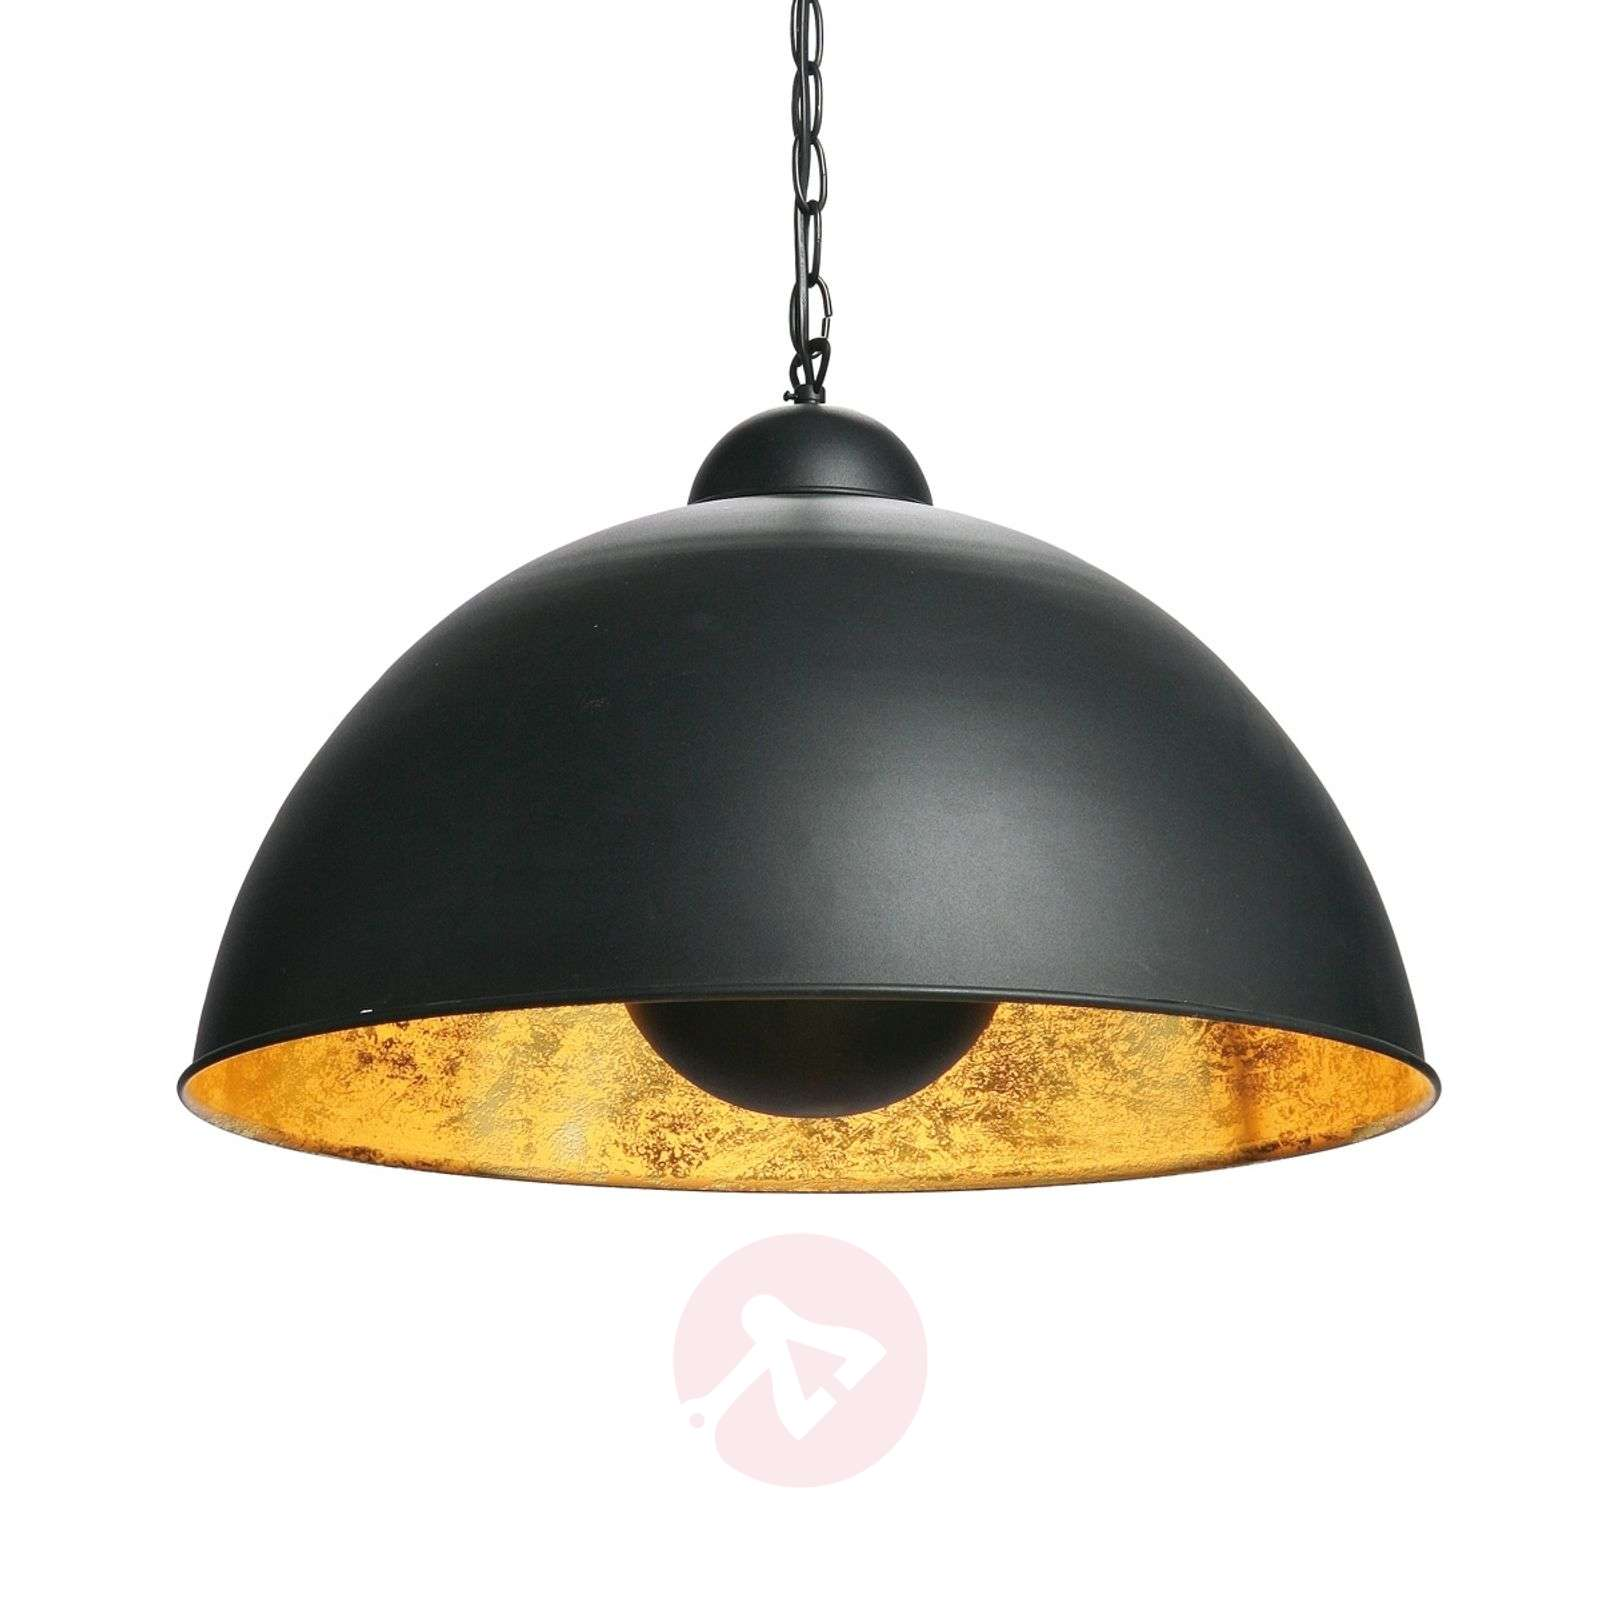 Suspension noire et or dottore for Suspension luminaire noir et or